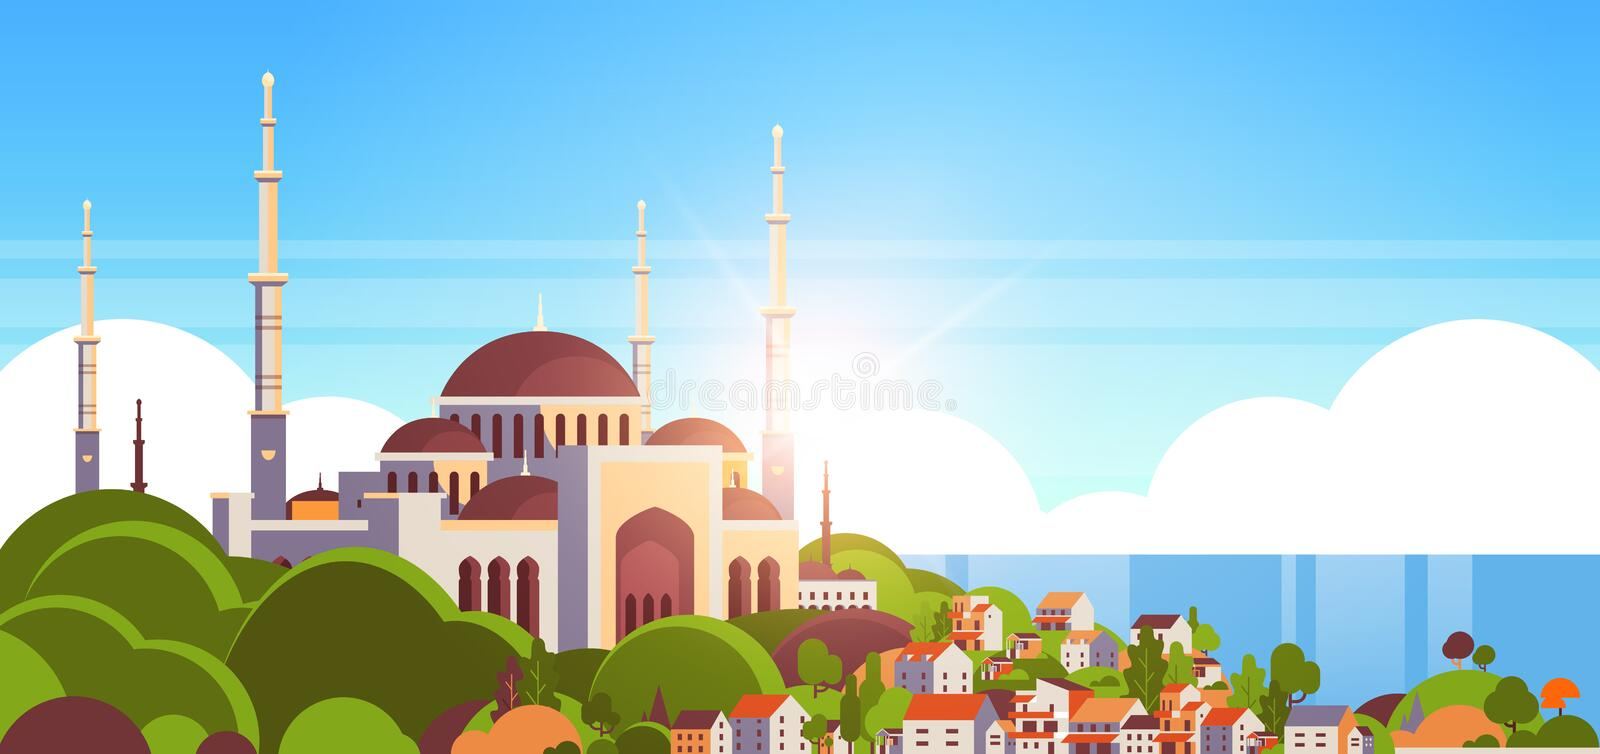 muslim cityscape nabawi mosque building religion stock vector illustration of background landscape 93912568 muslim cityscape nabawi mosque building